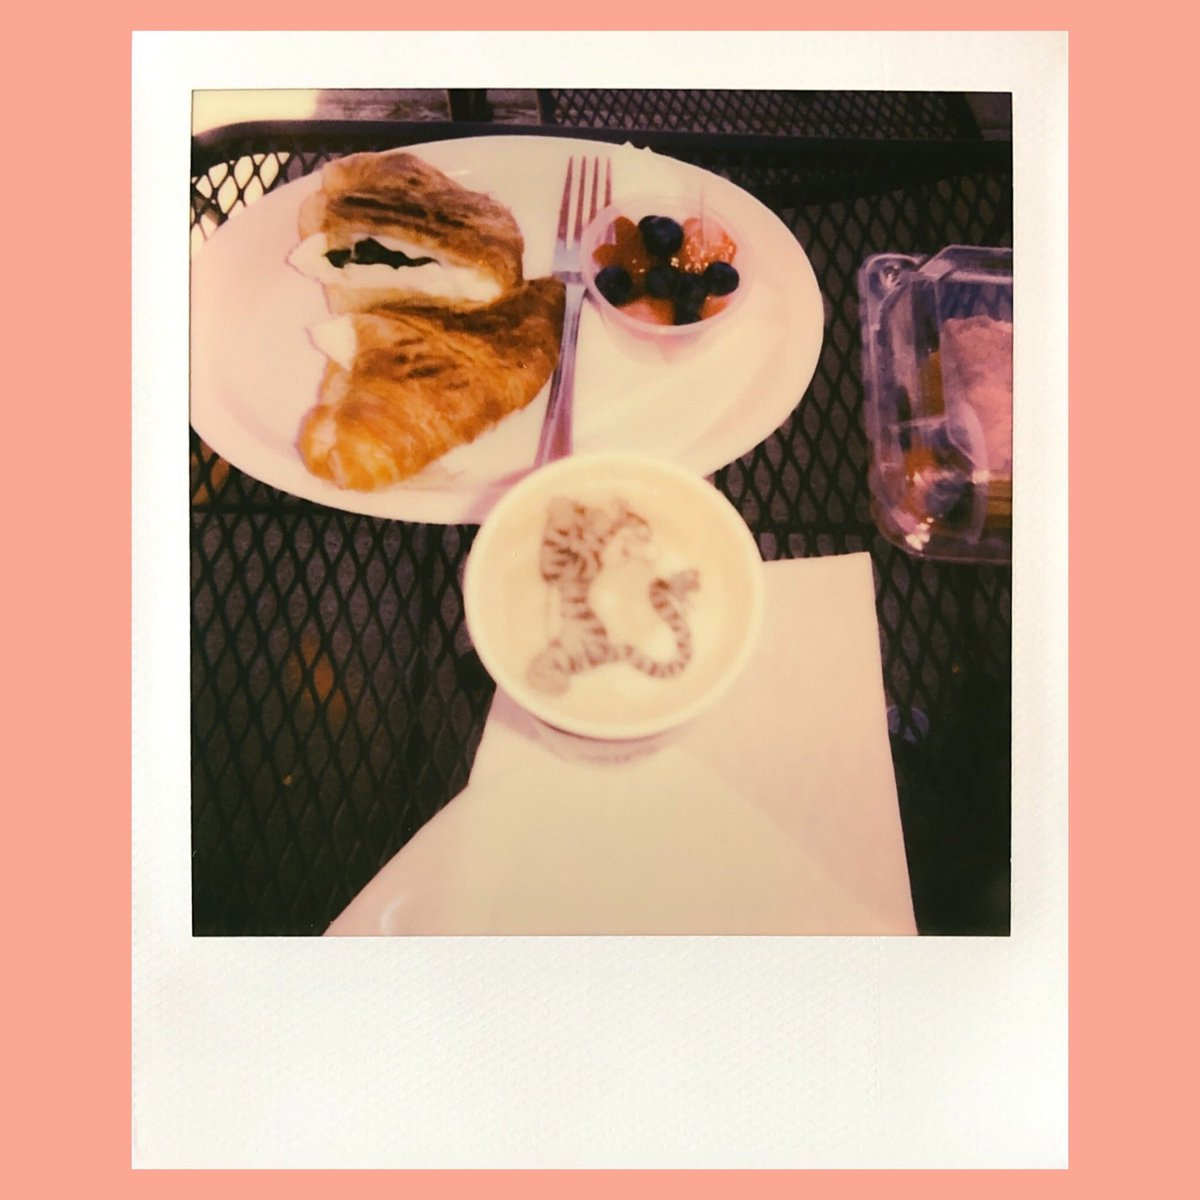 I'll make a cup of coffee for your head #Polaroid #filmphotography #coffee #WinnieThePoohpic.twitter.com/UhTmrYBvcg